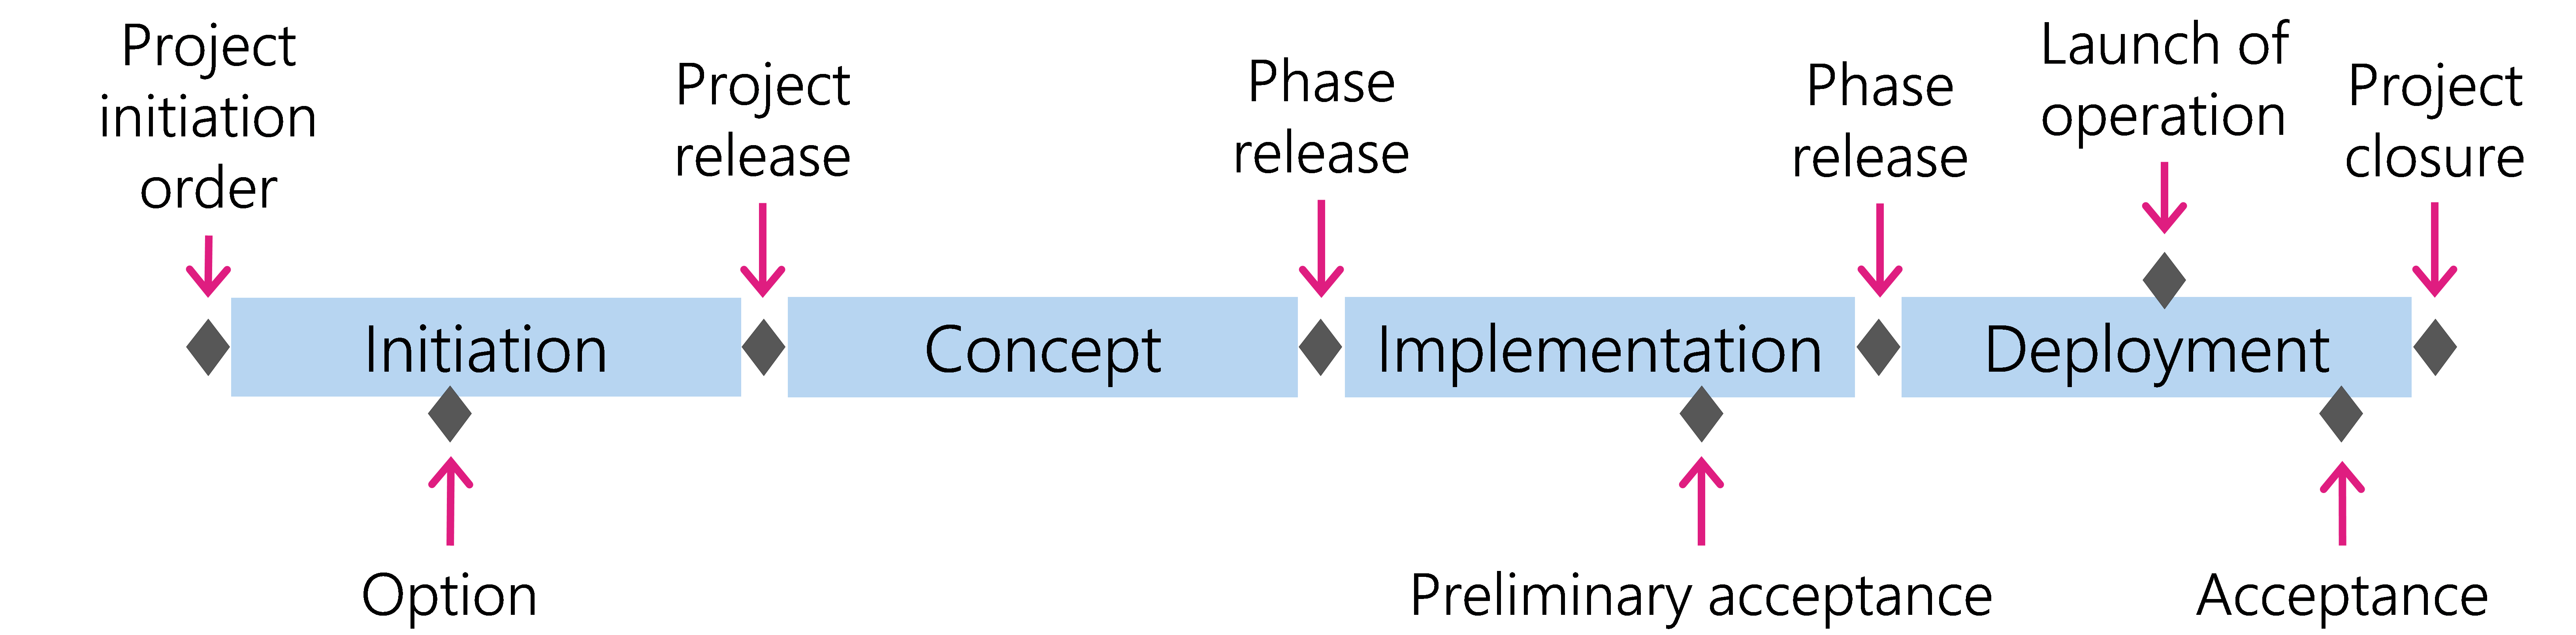 Figure 2: Project implementation in phases and with the help of milestones